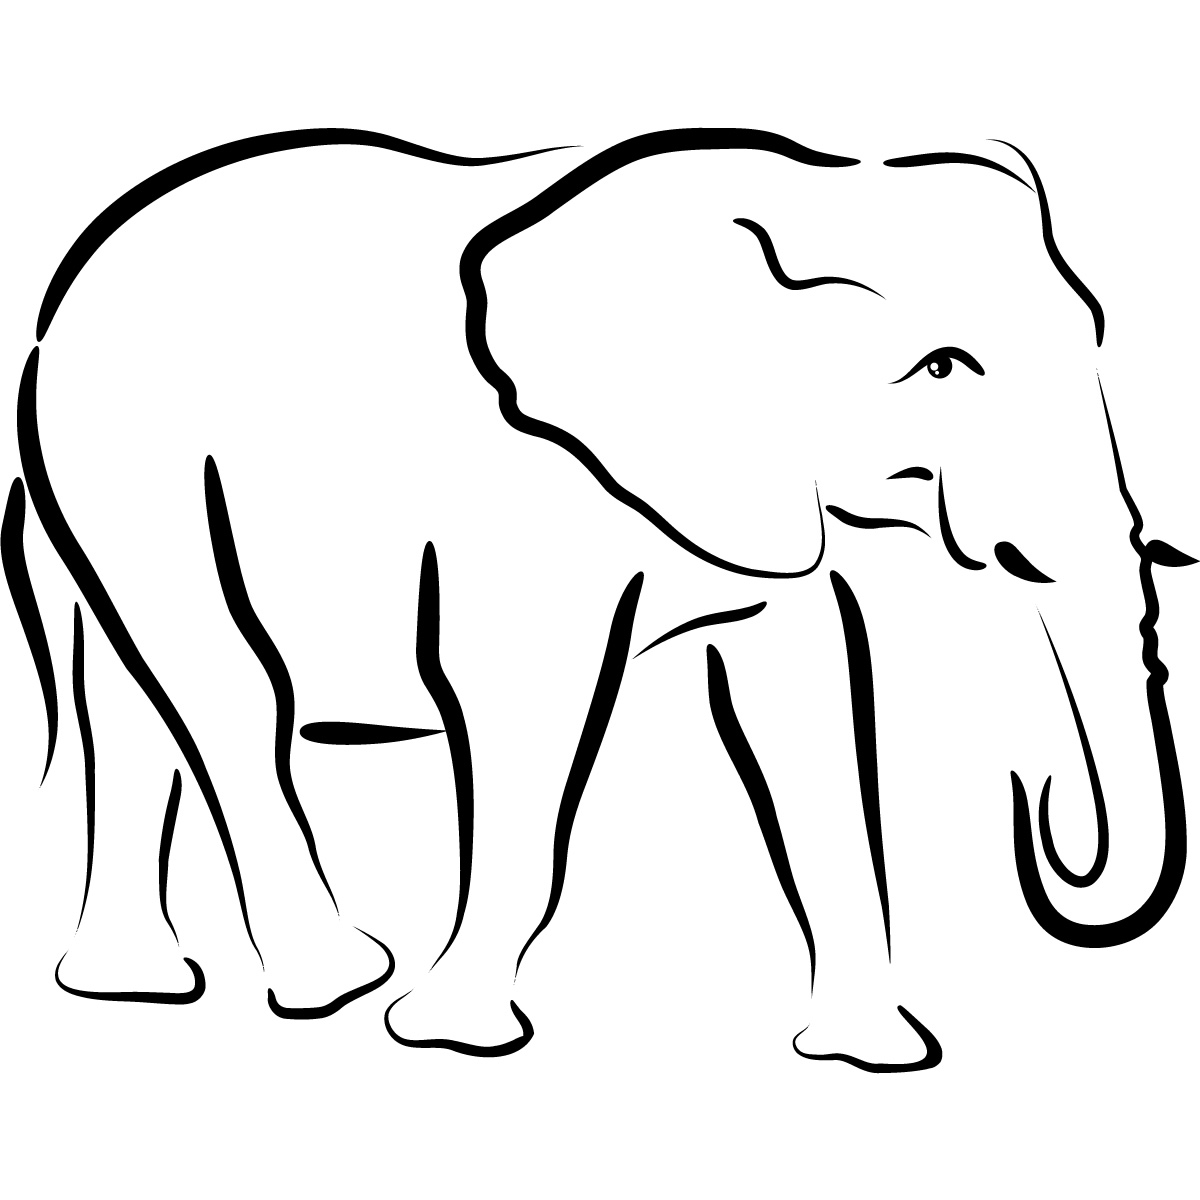 Free Outline Of Elephant Download Free Clip Art Free